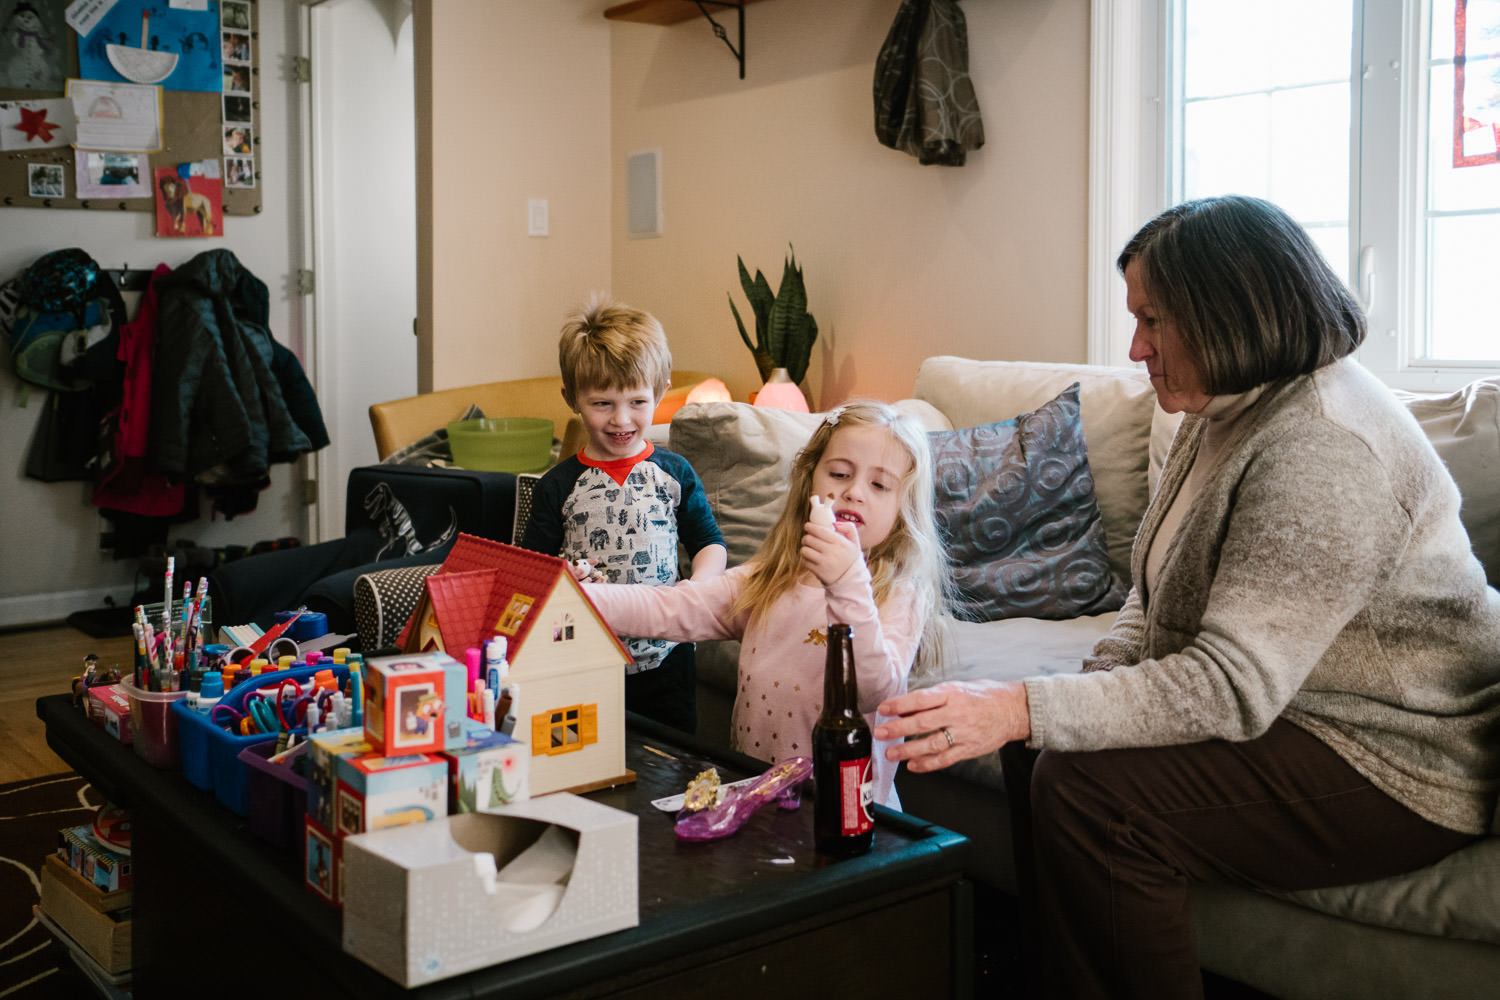 Two children talk with their grandmother in the living room.